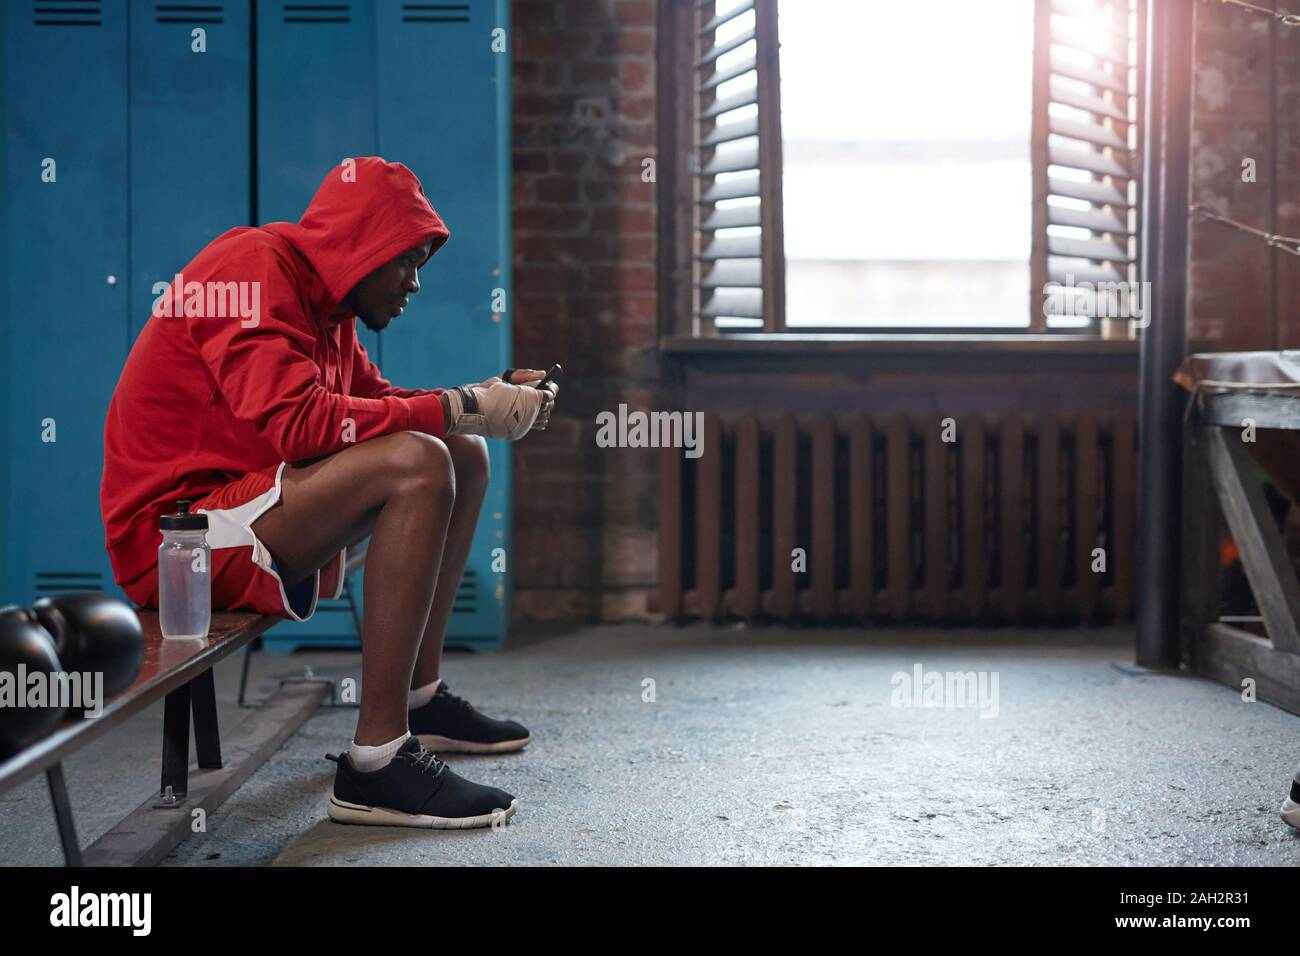 Muscular boxer in sports clothing sitting on bench and using his mobile phone in locker room Stock Photo